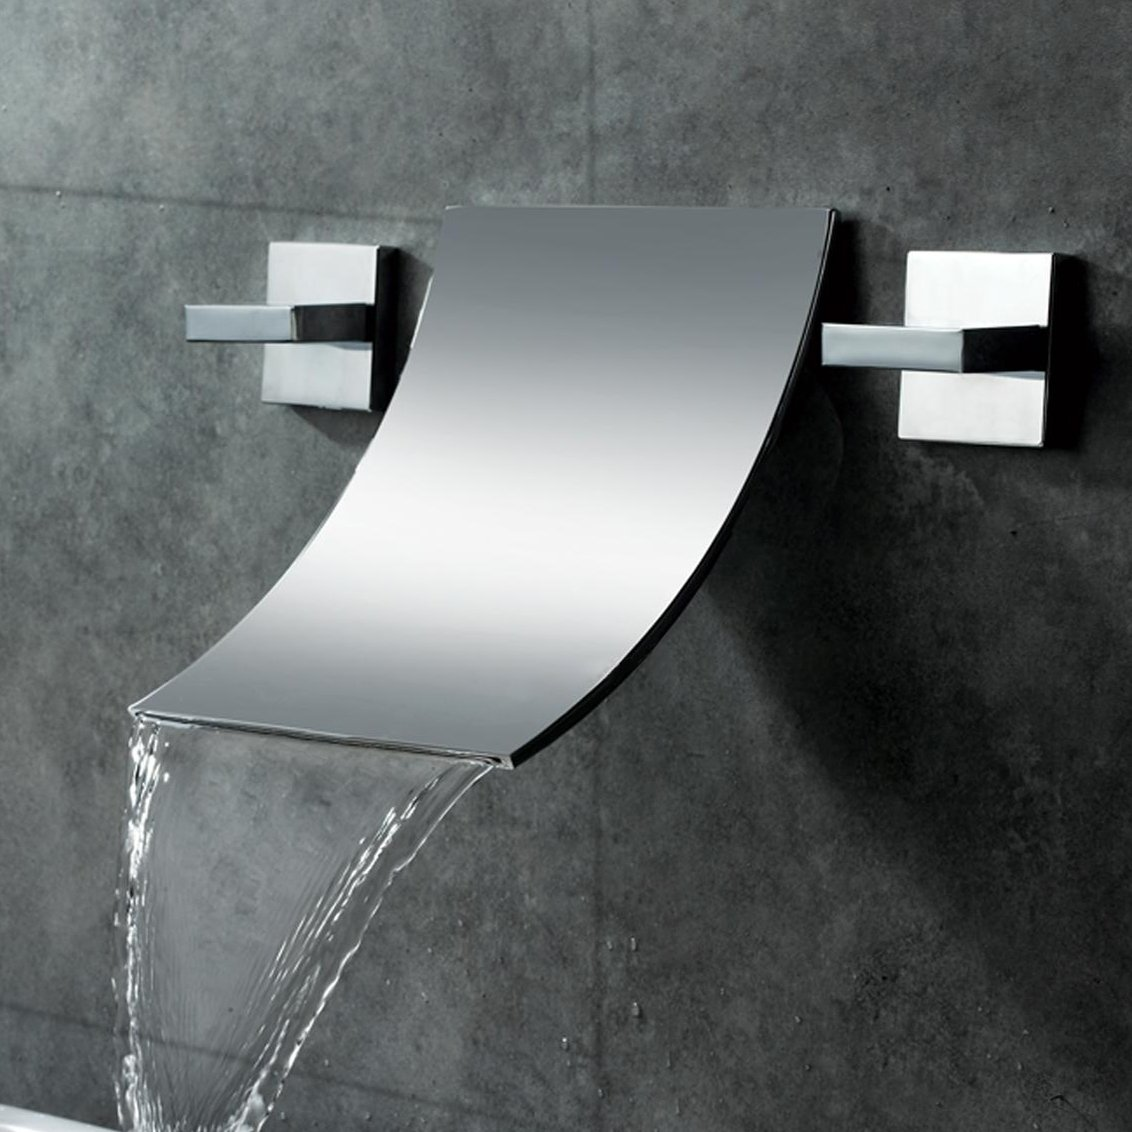 JiaYouJia Waterfall Wall-mounted Bathroom Sink Faucet by JiaYouJia